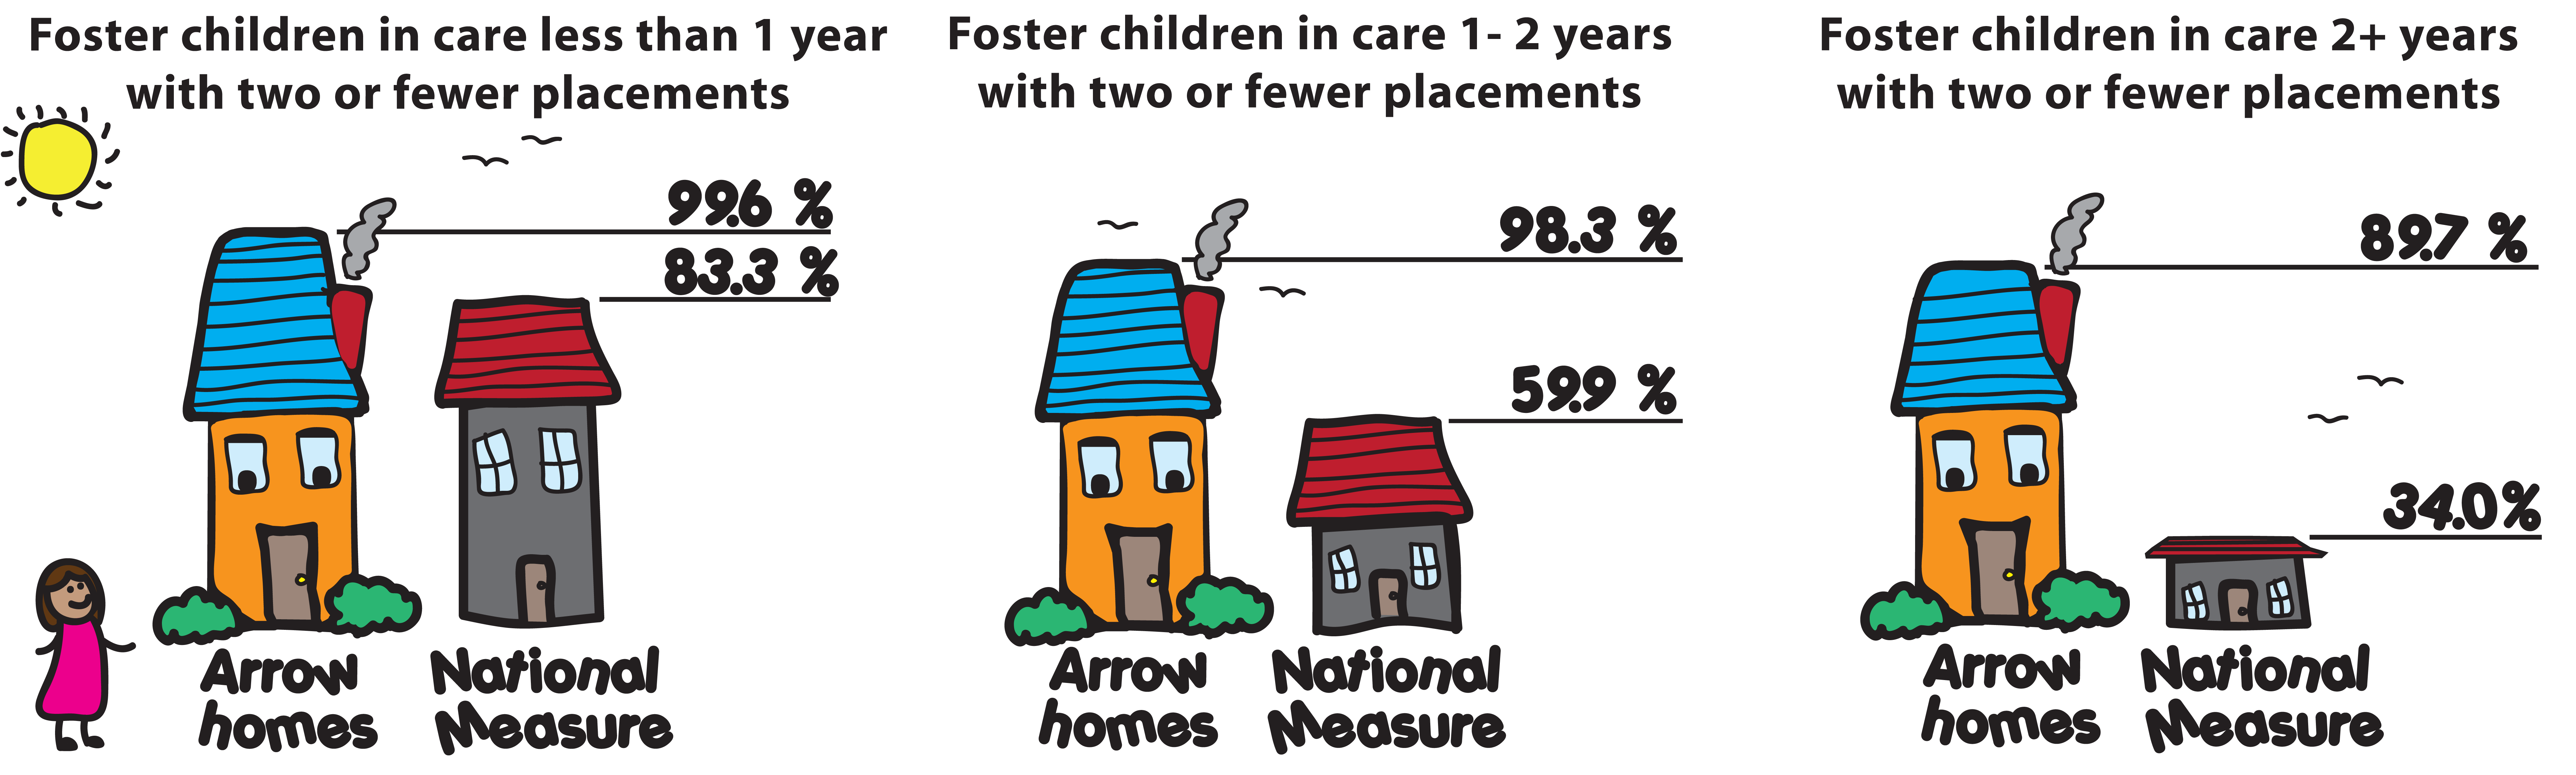 Young clipart hug. Collection of free fostering